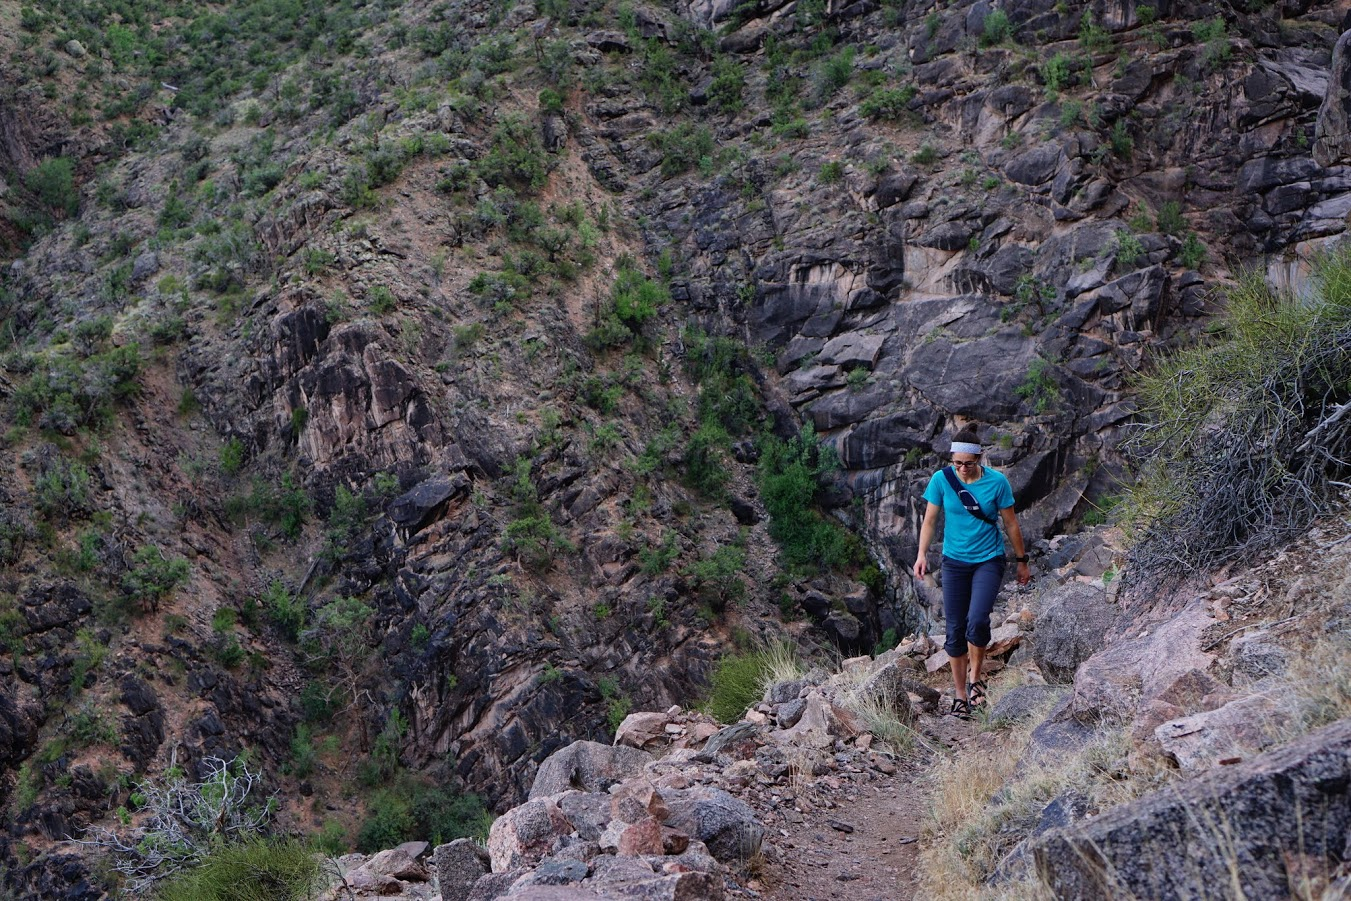 Best Hikes of Grand Junction: Moderate to Strenuous